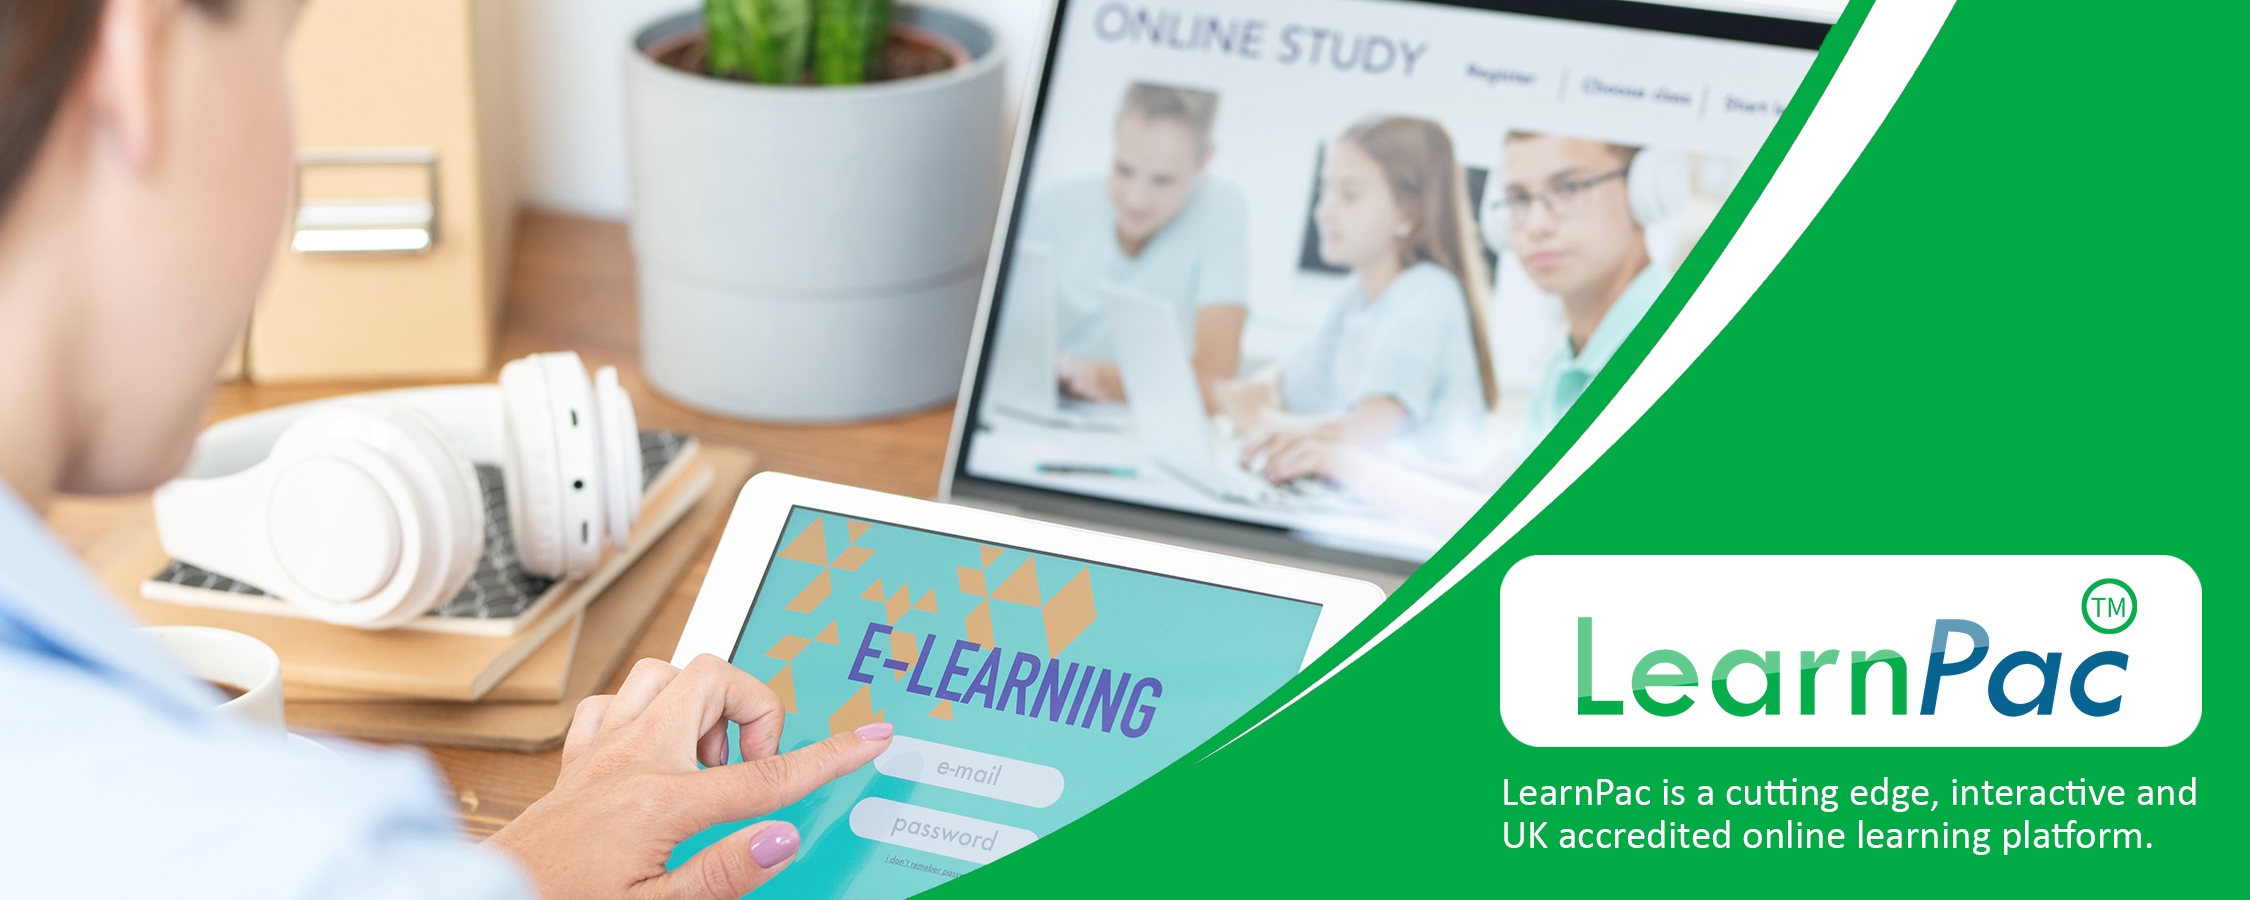 Care Certificate Standard 8 - E-Learning Courses - LearnPac Systems UK -